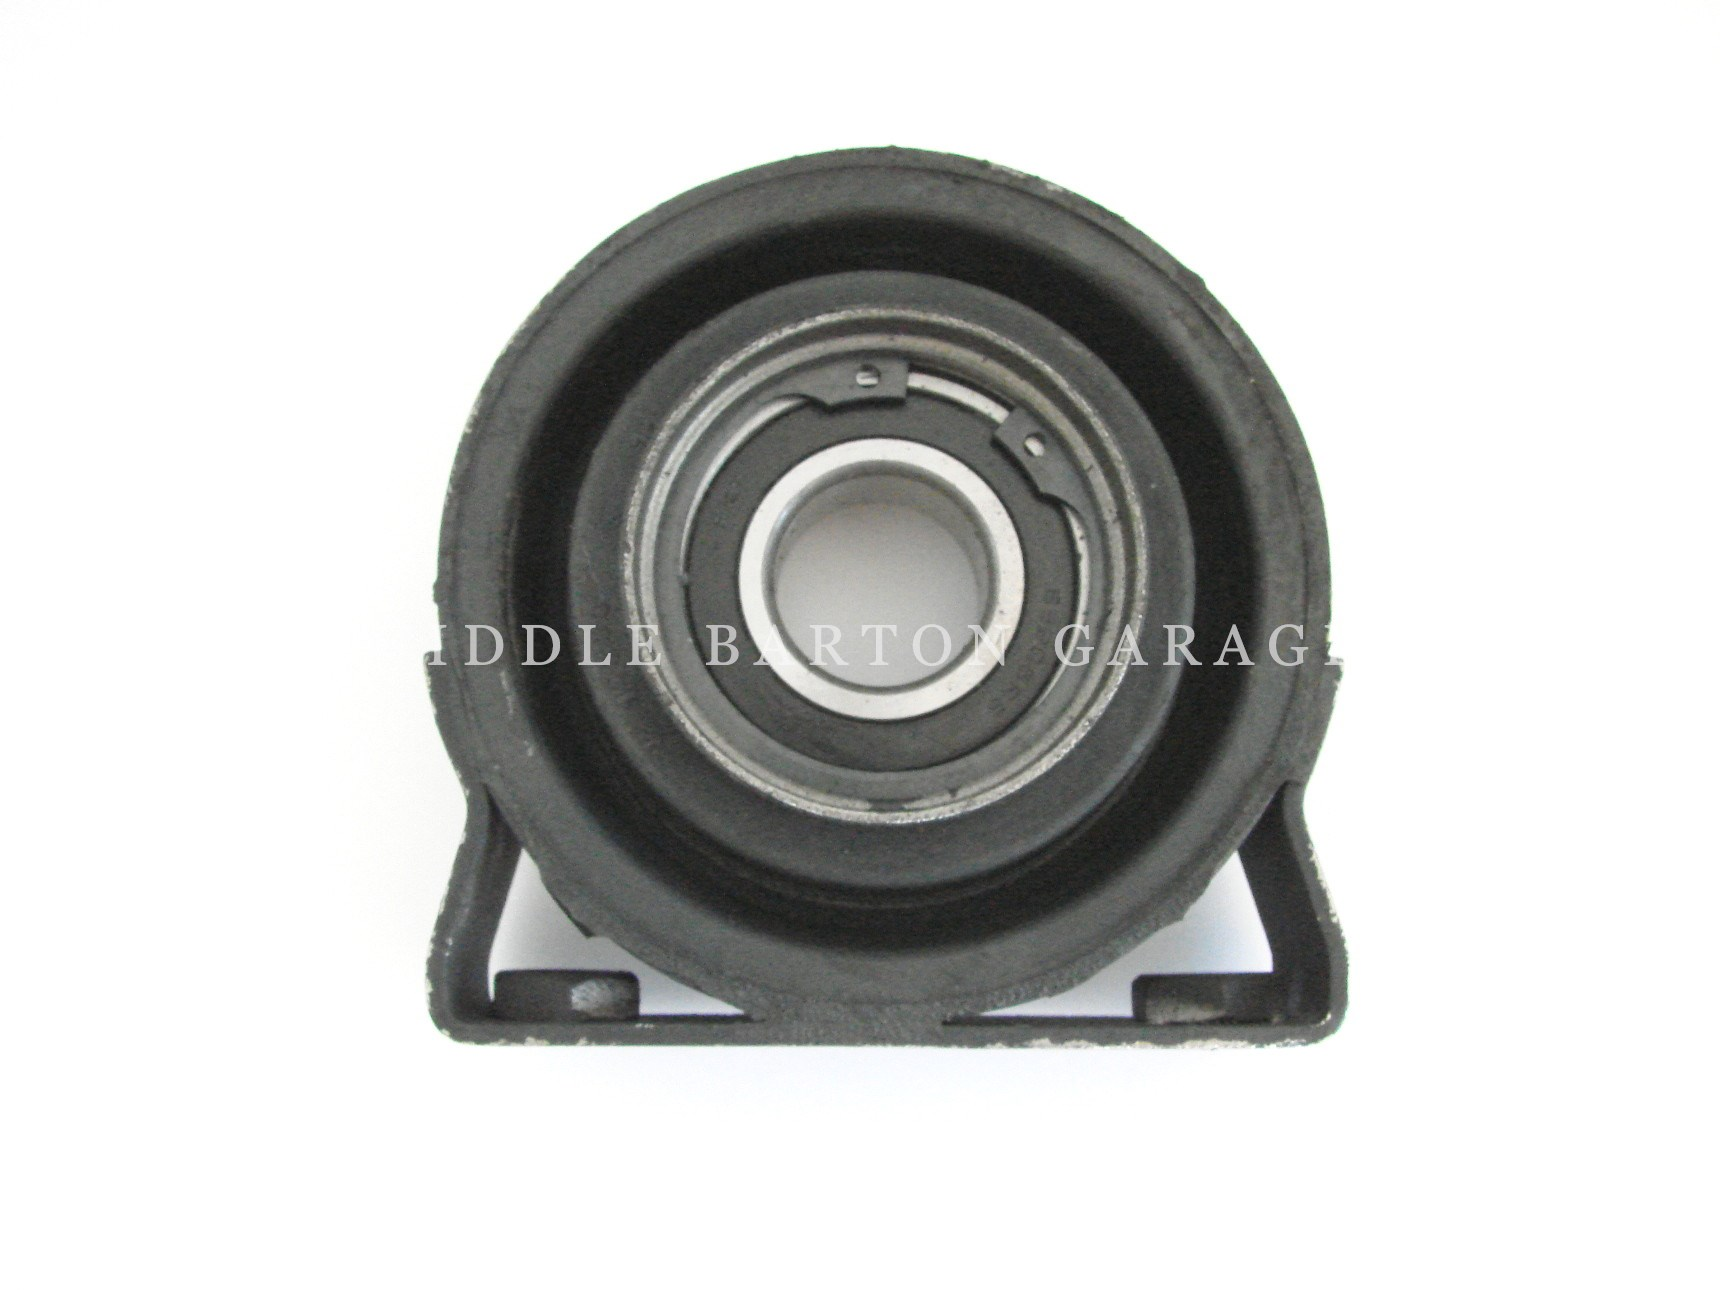 PROPSHAFT CENTRE MOUNT WITH BEARING